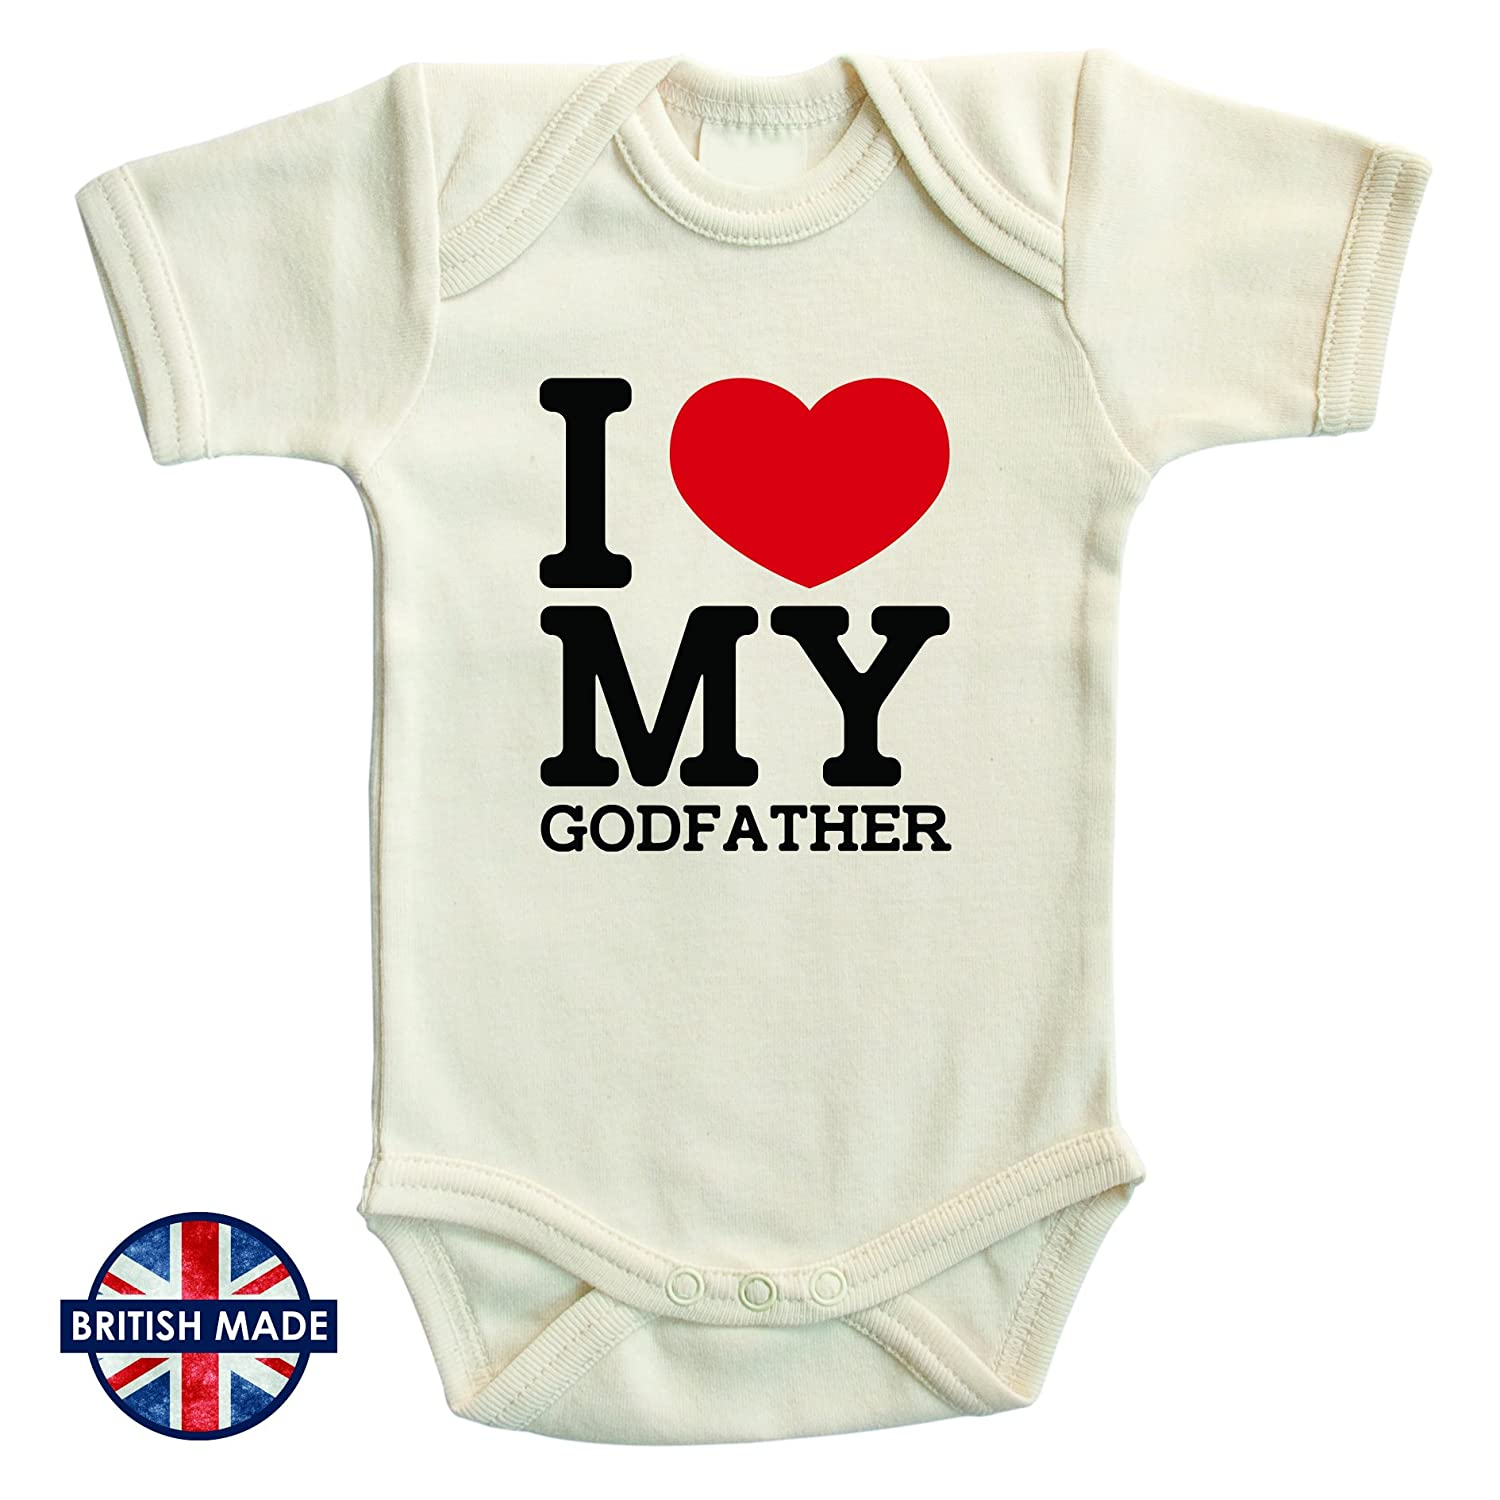 I Love My Godfather Baby Bodysuit with supersoft cotton Baby